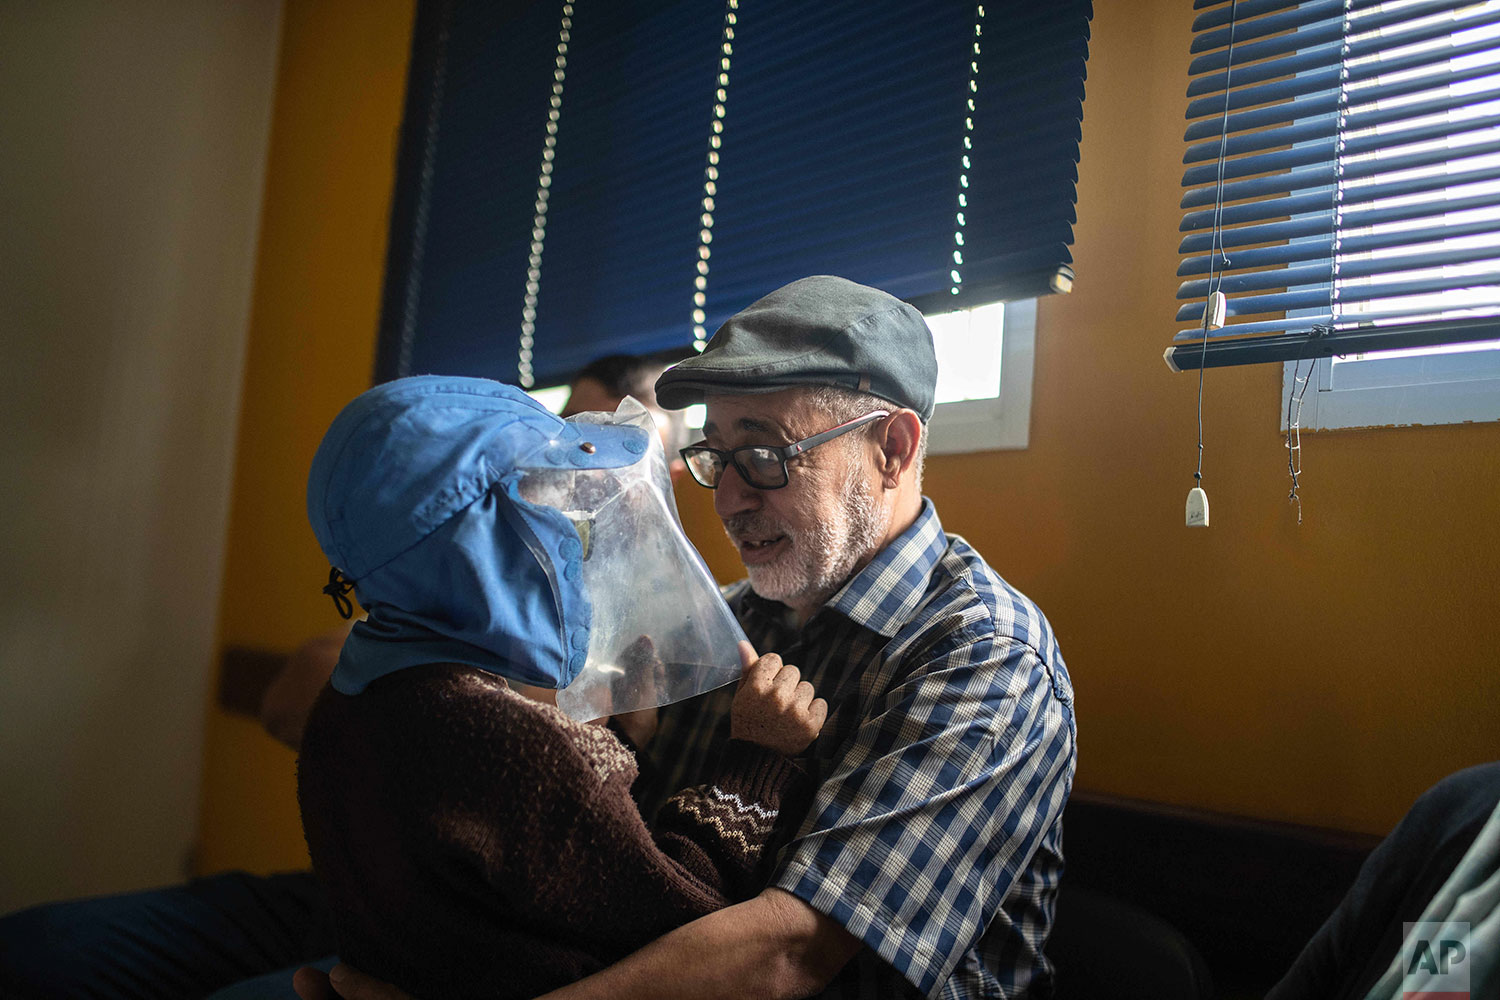 In this Wednesday, July 24, 2019 photo, Habib El Ghazaoui, a father who runs the Association for Solidarity with Children of the Moon, plays with 8 year old Mustapha who is affected by a rare genetic disorder called xeroderma pigmentosum, or XP, inside a hospital in Casablanca, Morocco. (AP Photo/Mosa'ab Elshamy)